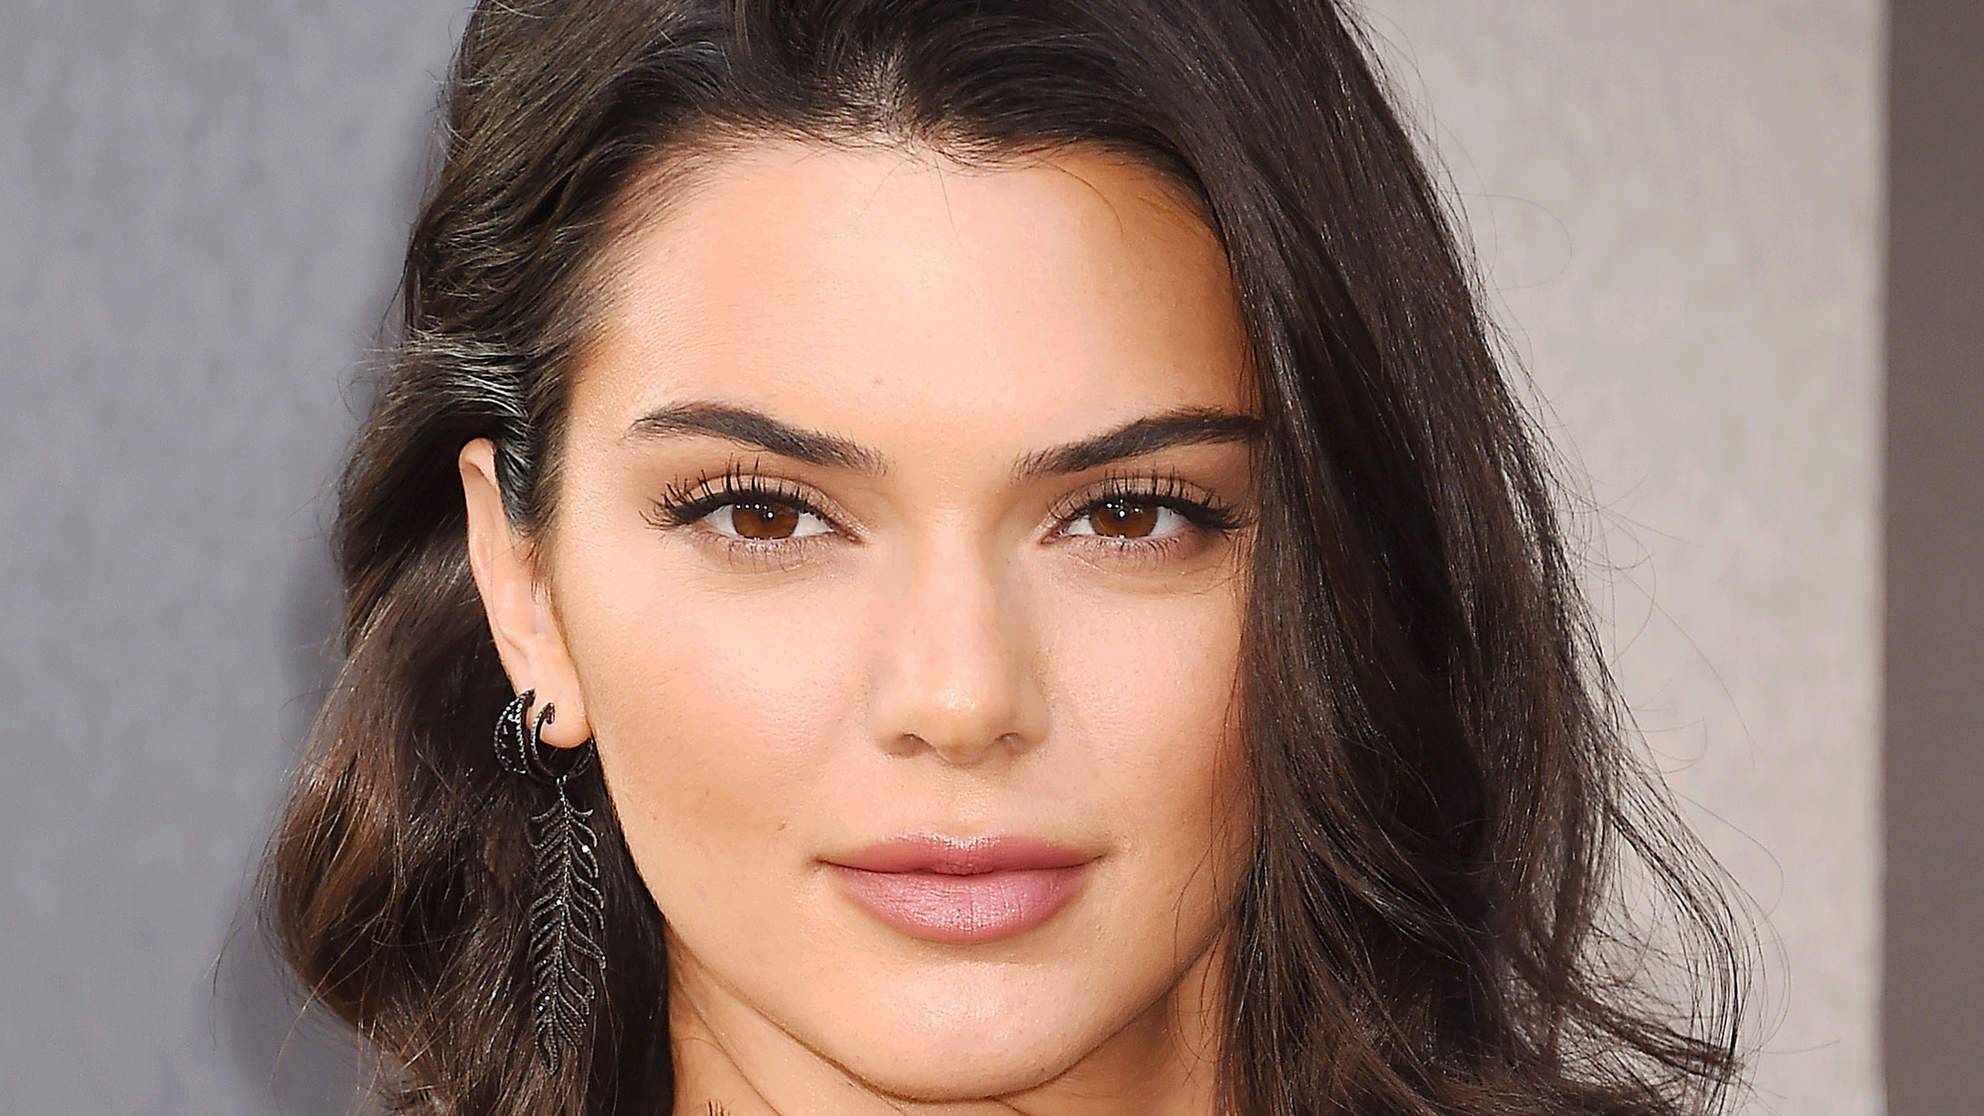 Get a First Look at Kendall Jenner's New Adidas Ad